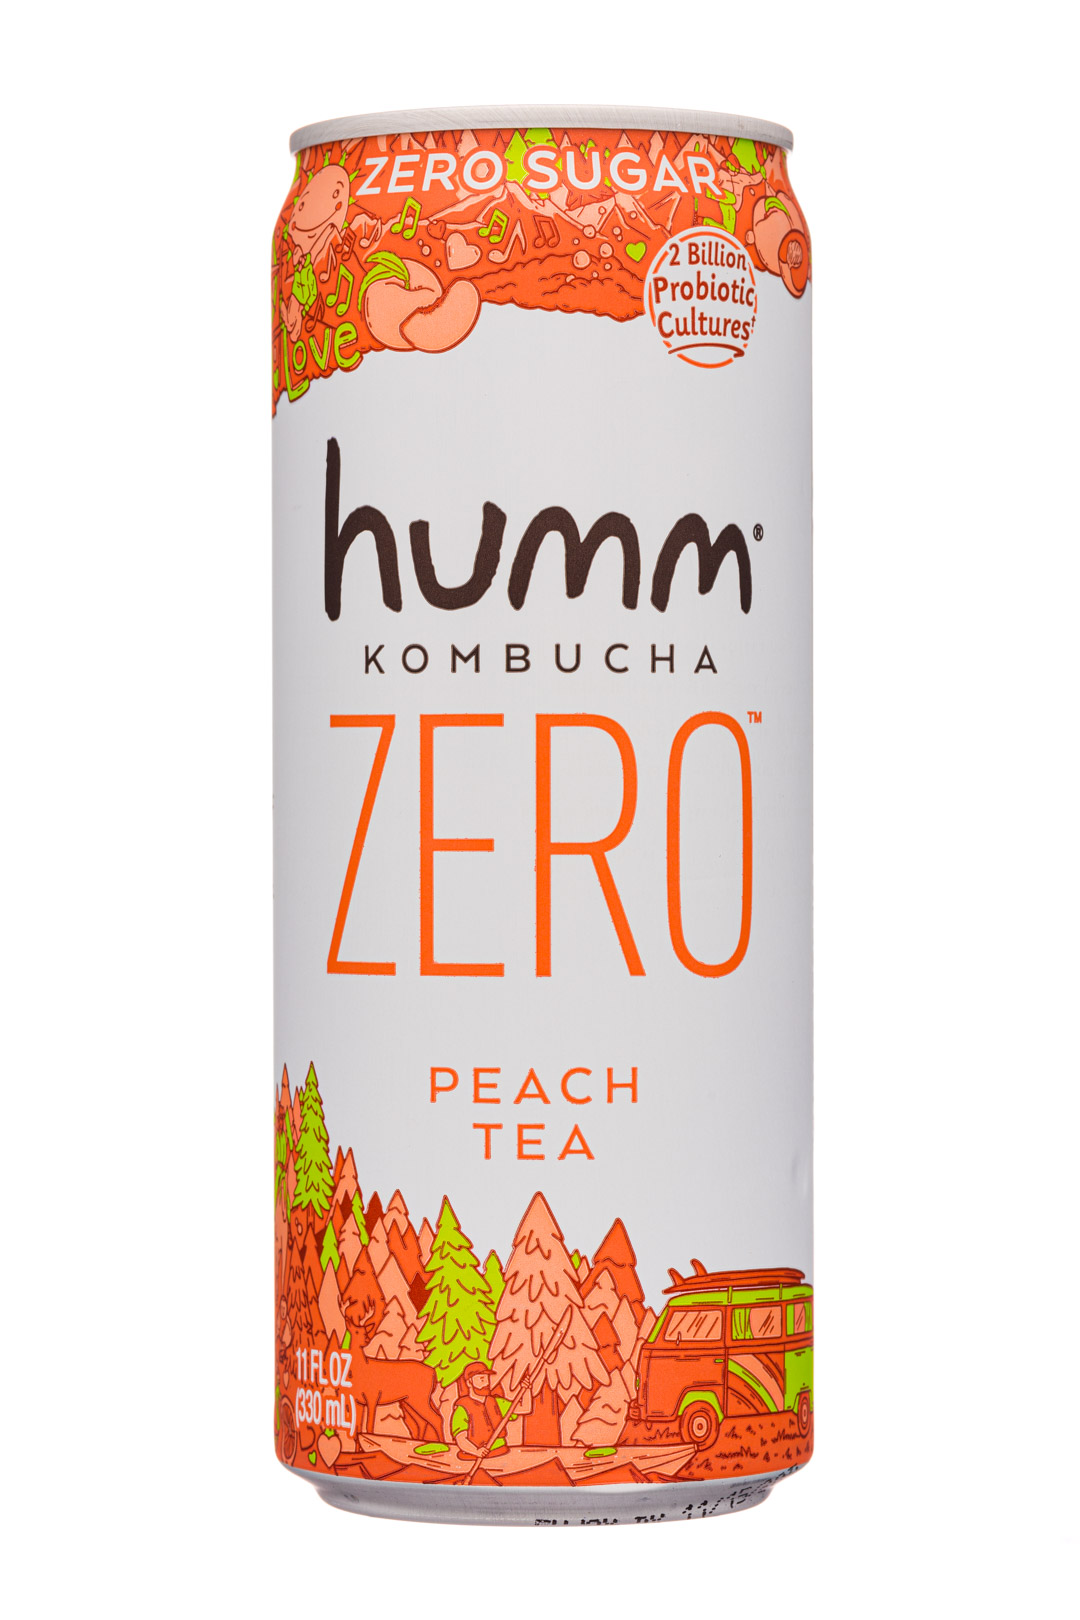 Humm Zero - Peach Tea